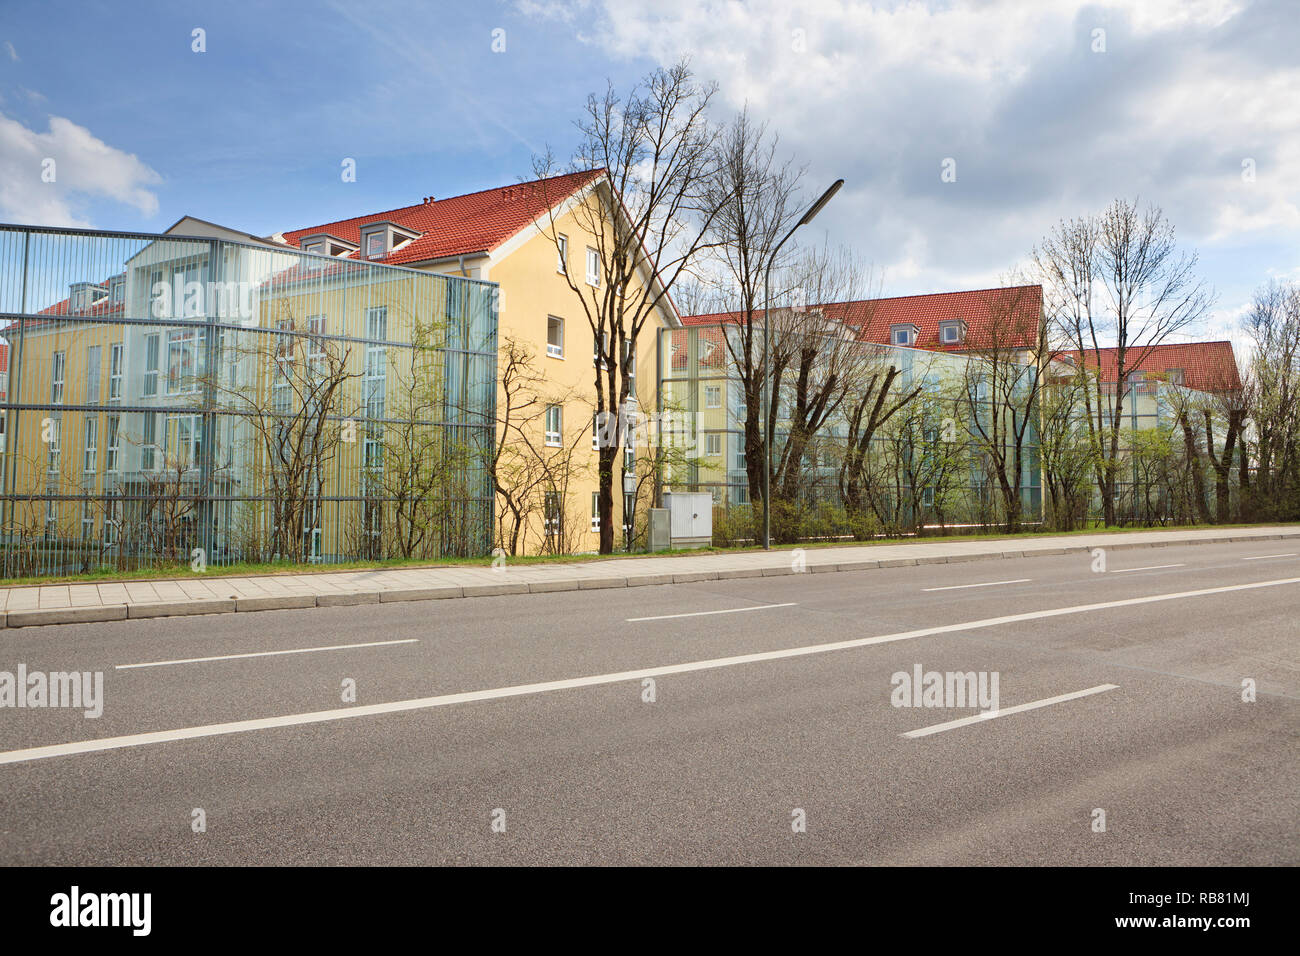 A noise barrier made of large glass panels protects a newly constructed apartment building from the noise of a four lane road passing nearby. - Stock Image